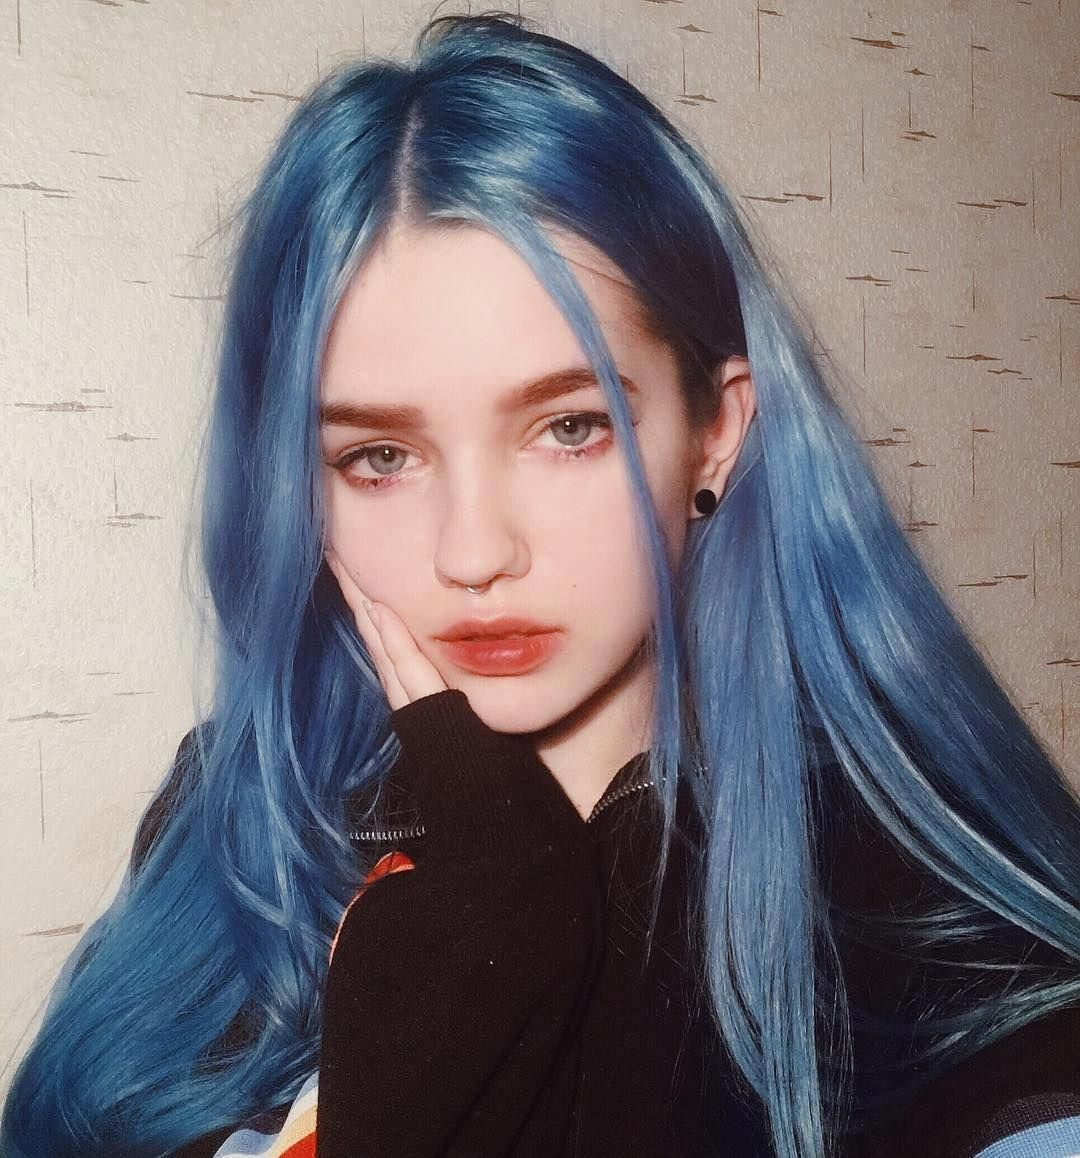 Repost Stunning Blue Hair Syntheticwigs Bluehair In 2020 Grunge Hair Aesthetic Hair Dye My Hair